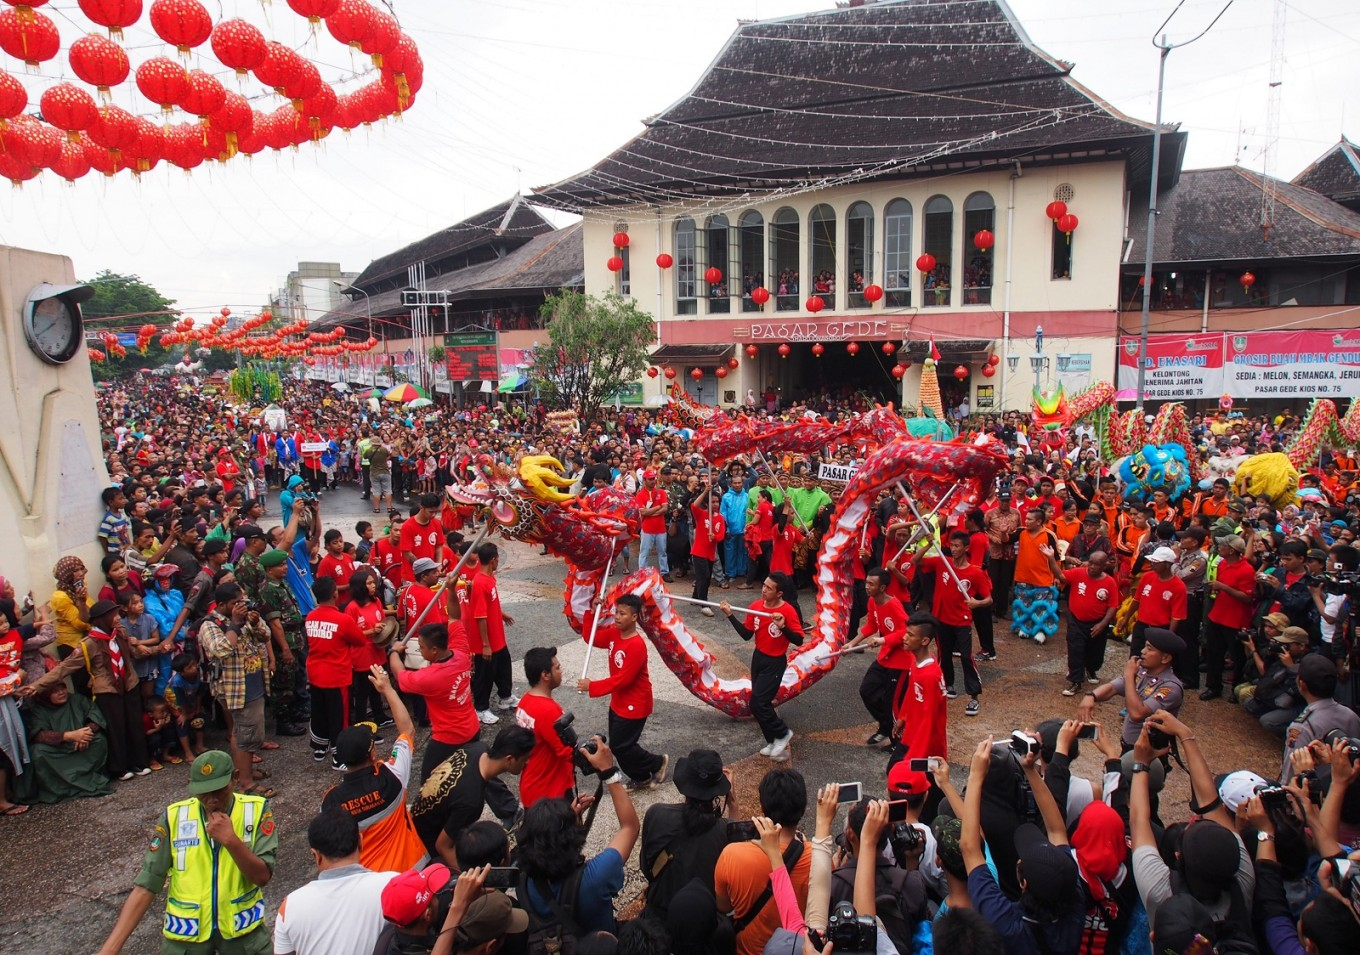 Sudiroprajan residents in Surakarta, Central Java, present a liong (dragon dance) in front of the Tien Kak Sie temple on Jan. 22.